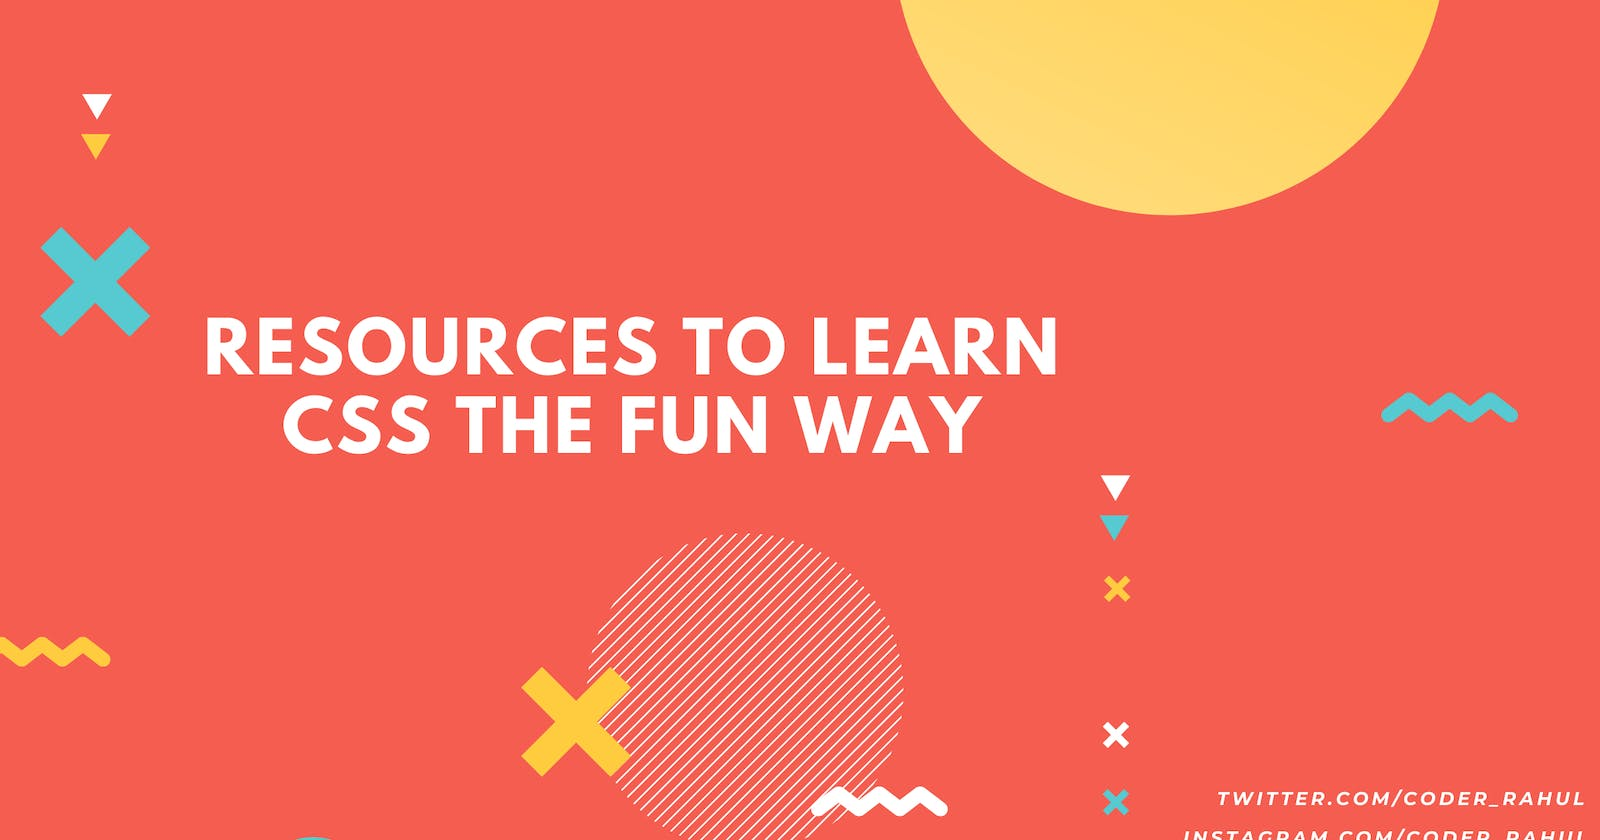 Best Resources to Learn CSS the fun way